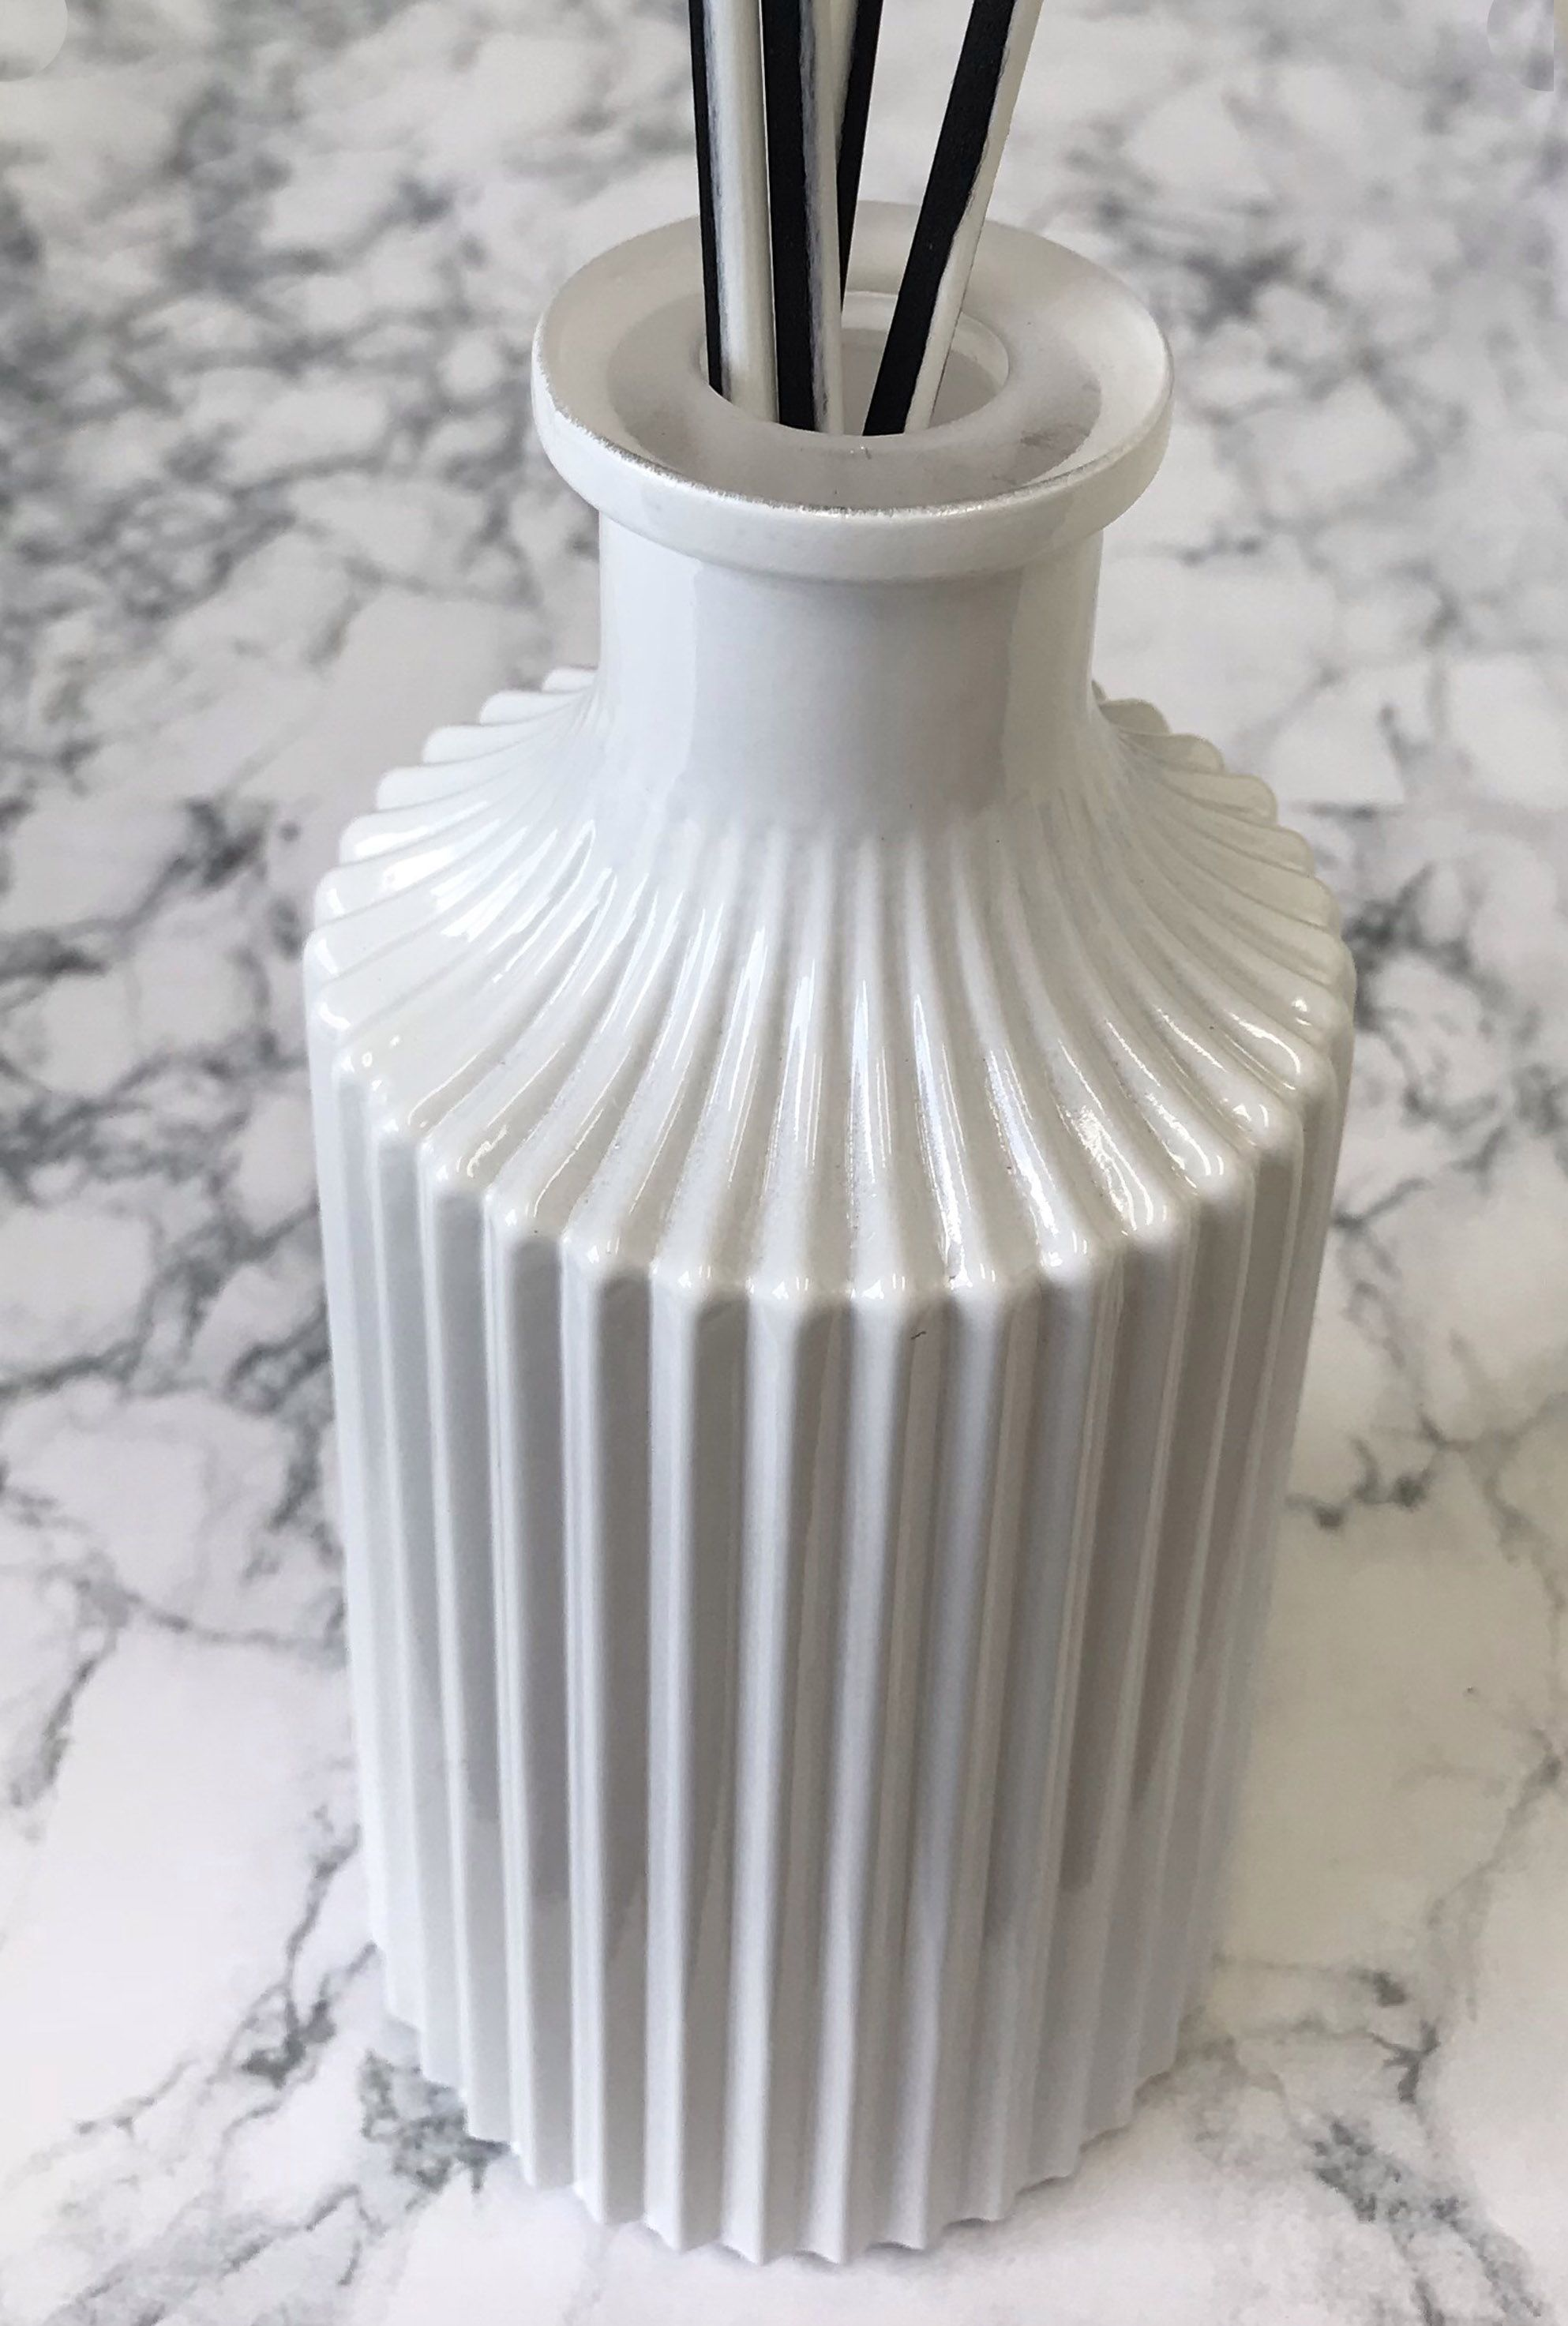 Glossy White Reed Diffuser Bottle. Reed diffuser, Candle